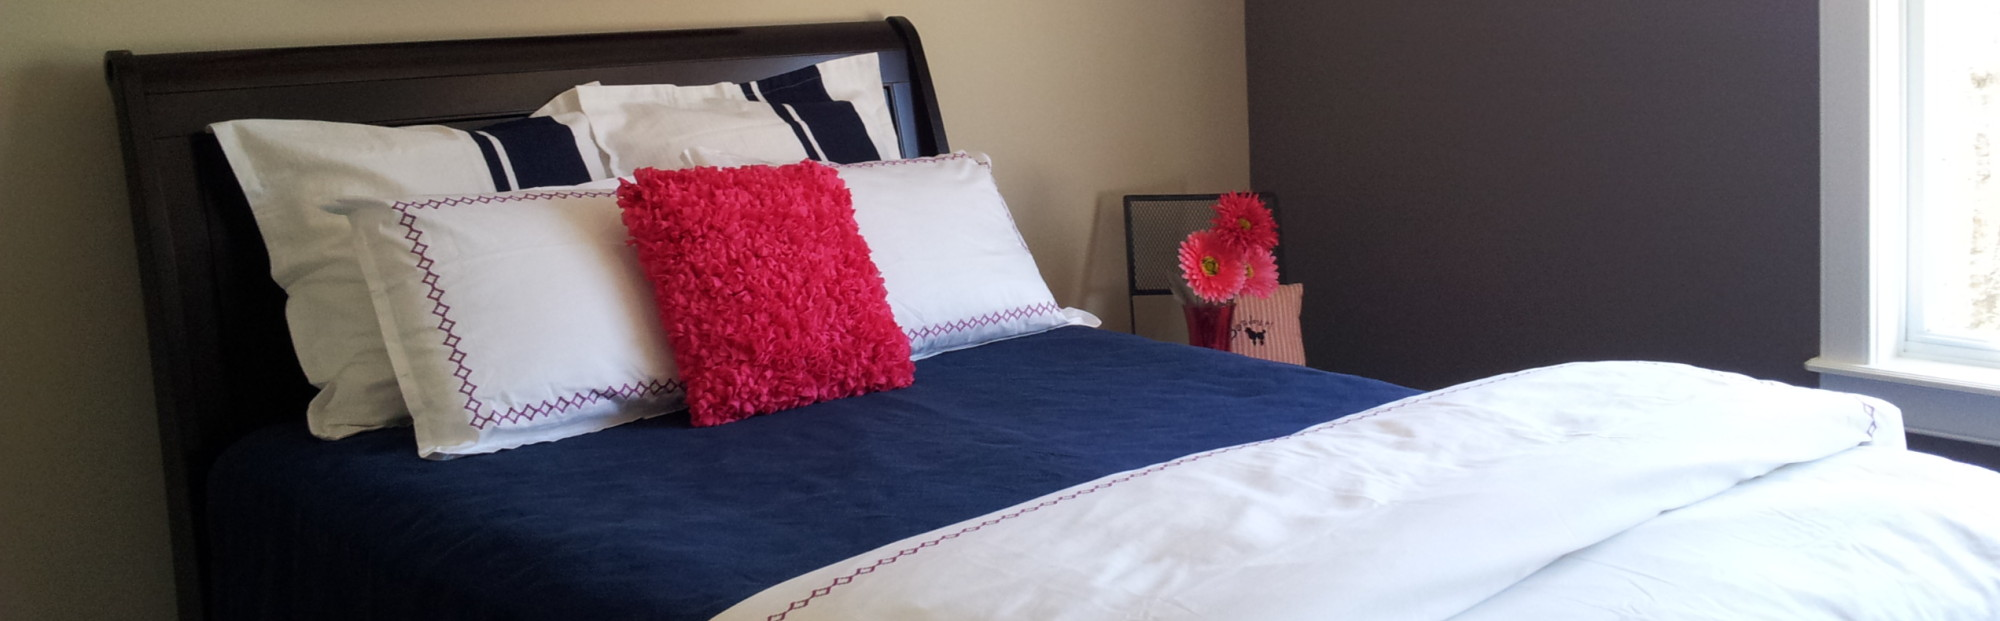 Prep Home Staging ……Picture Perfect Styling